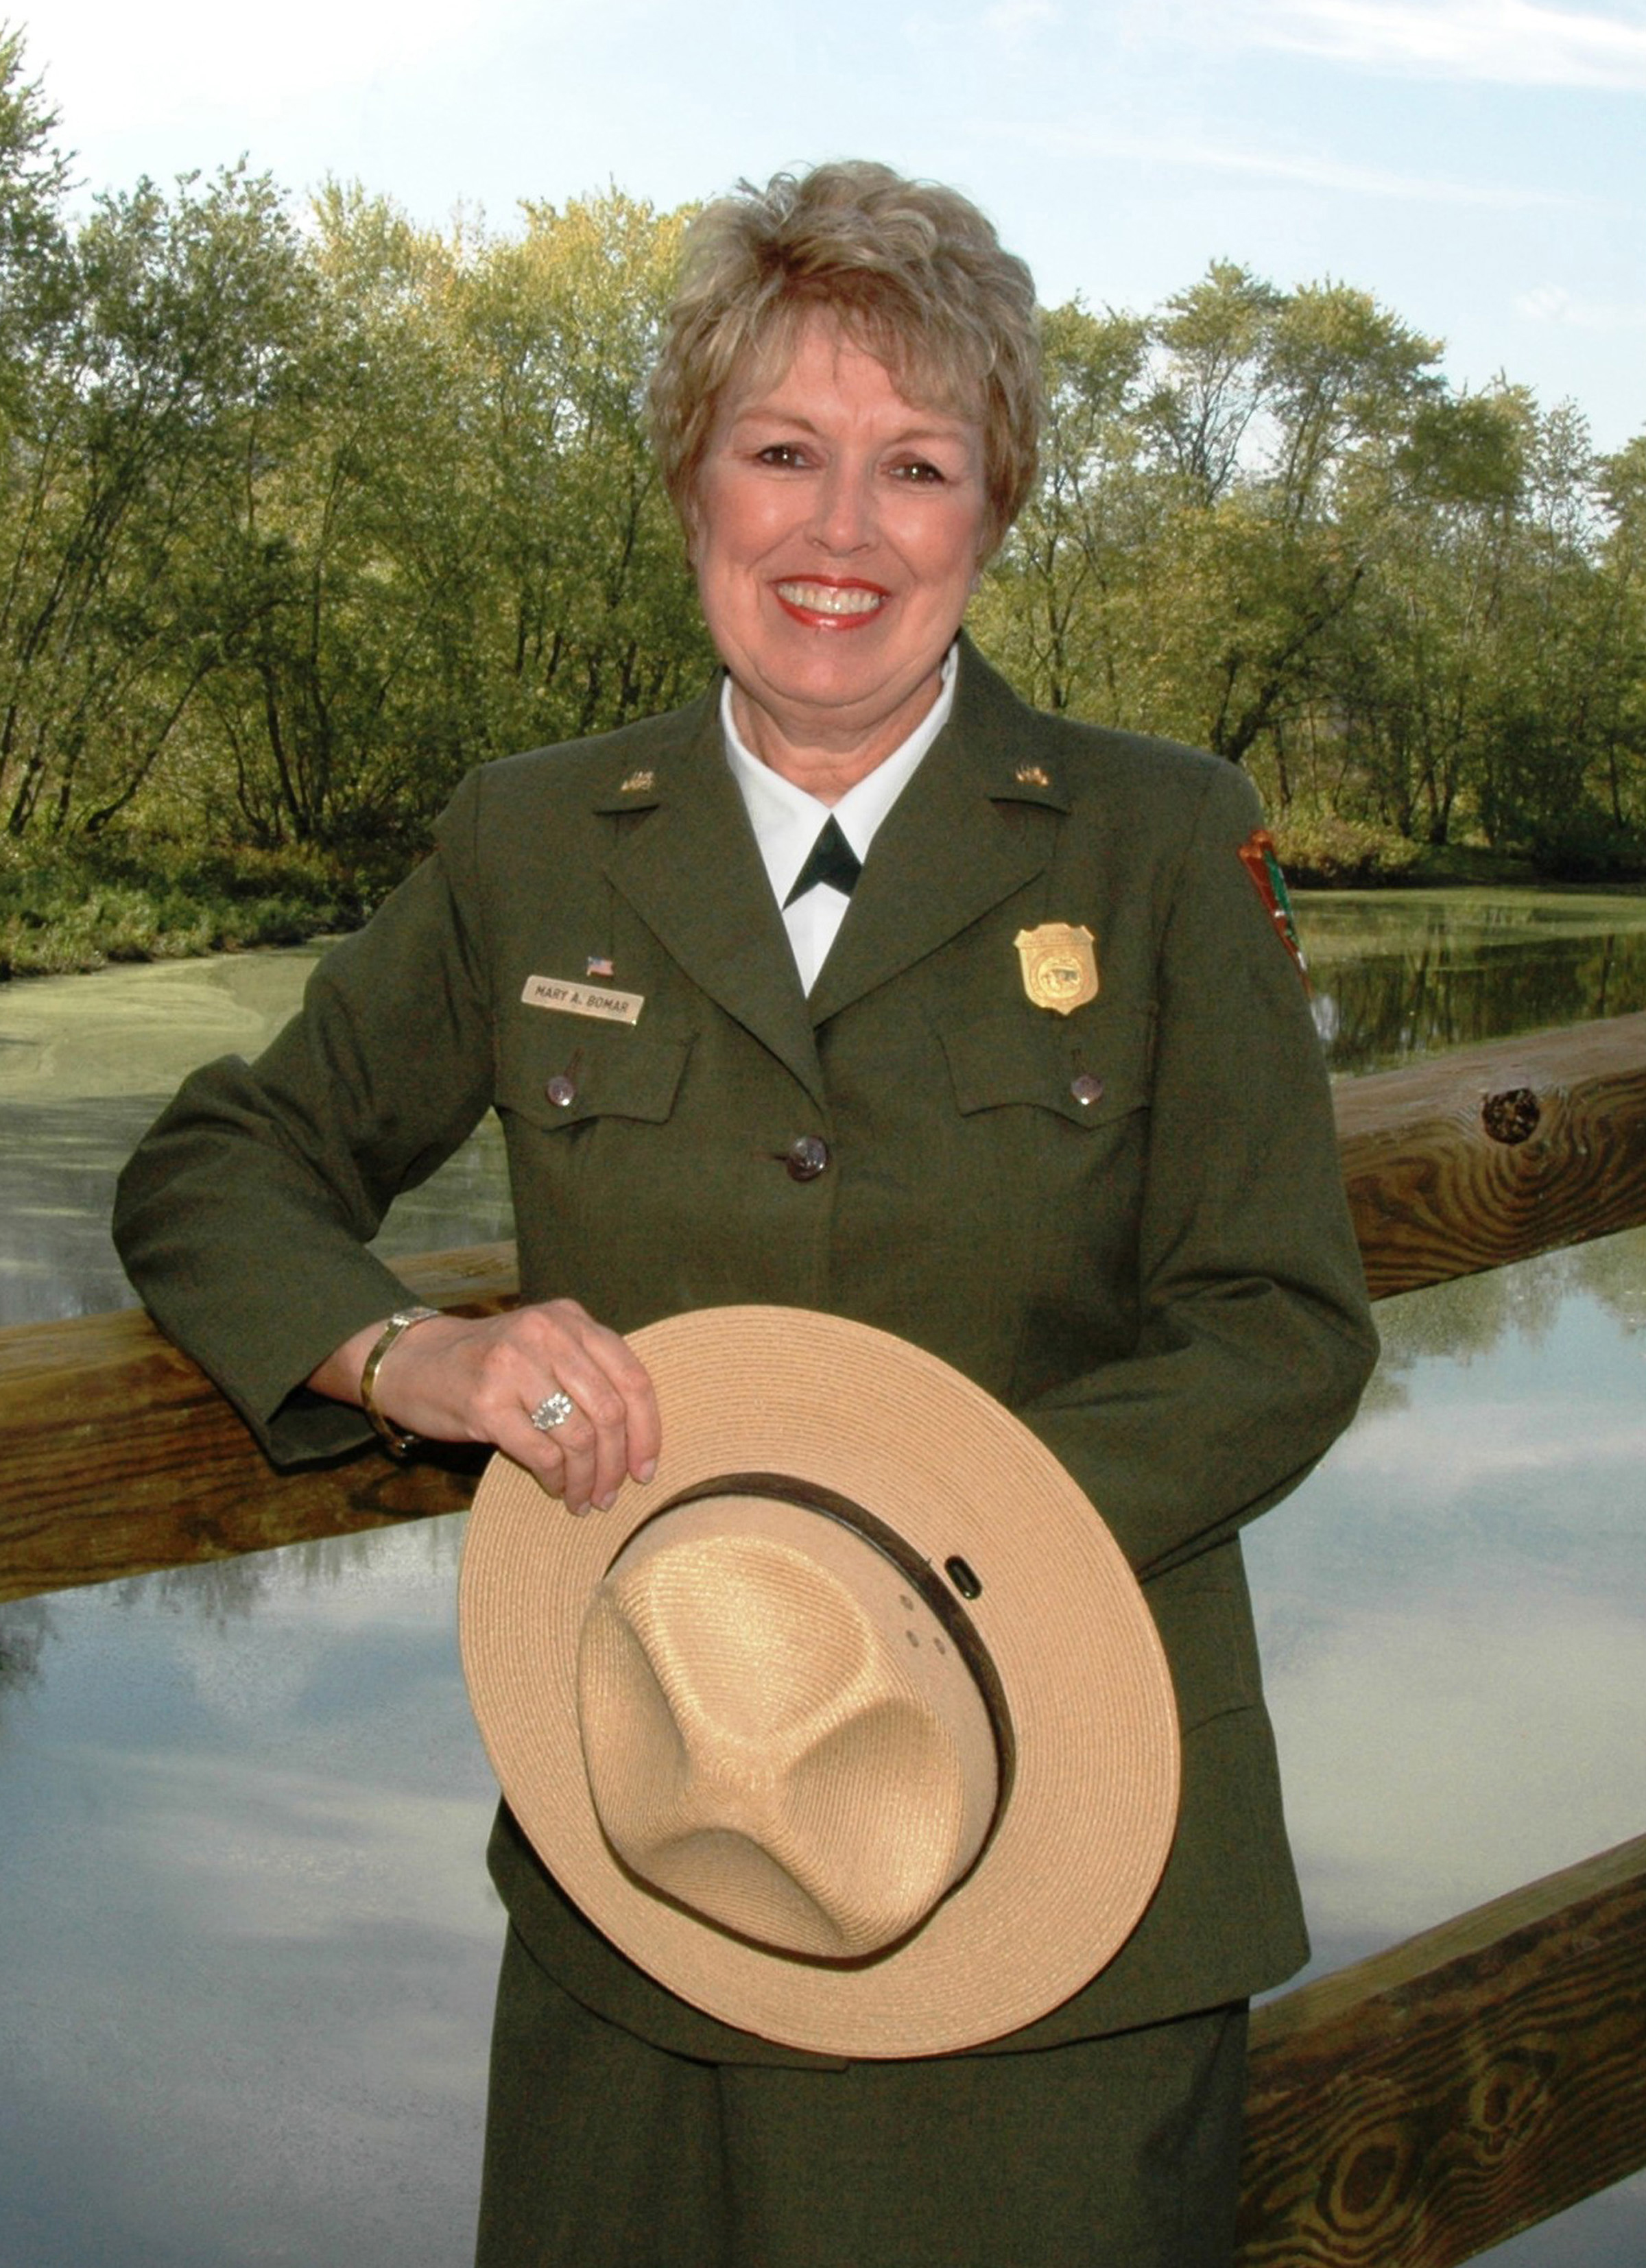 The 44 style hat comes standard with a pyramid pattern of three eyelets on each side of the crown. National Park Service Uniforms Wikipedia